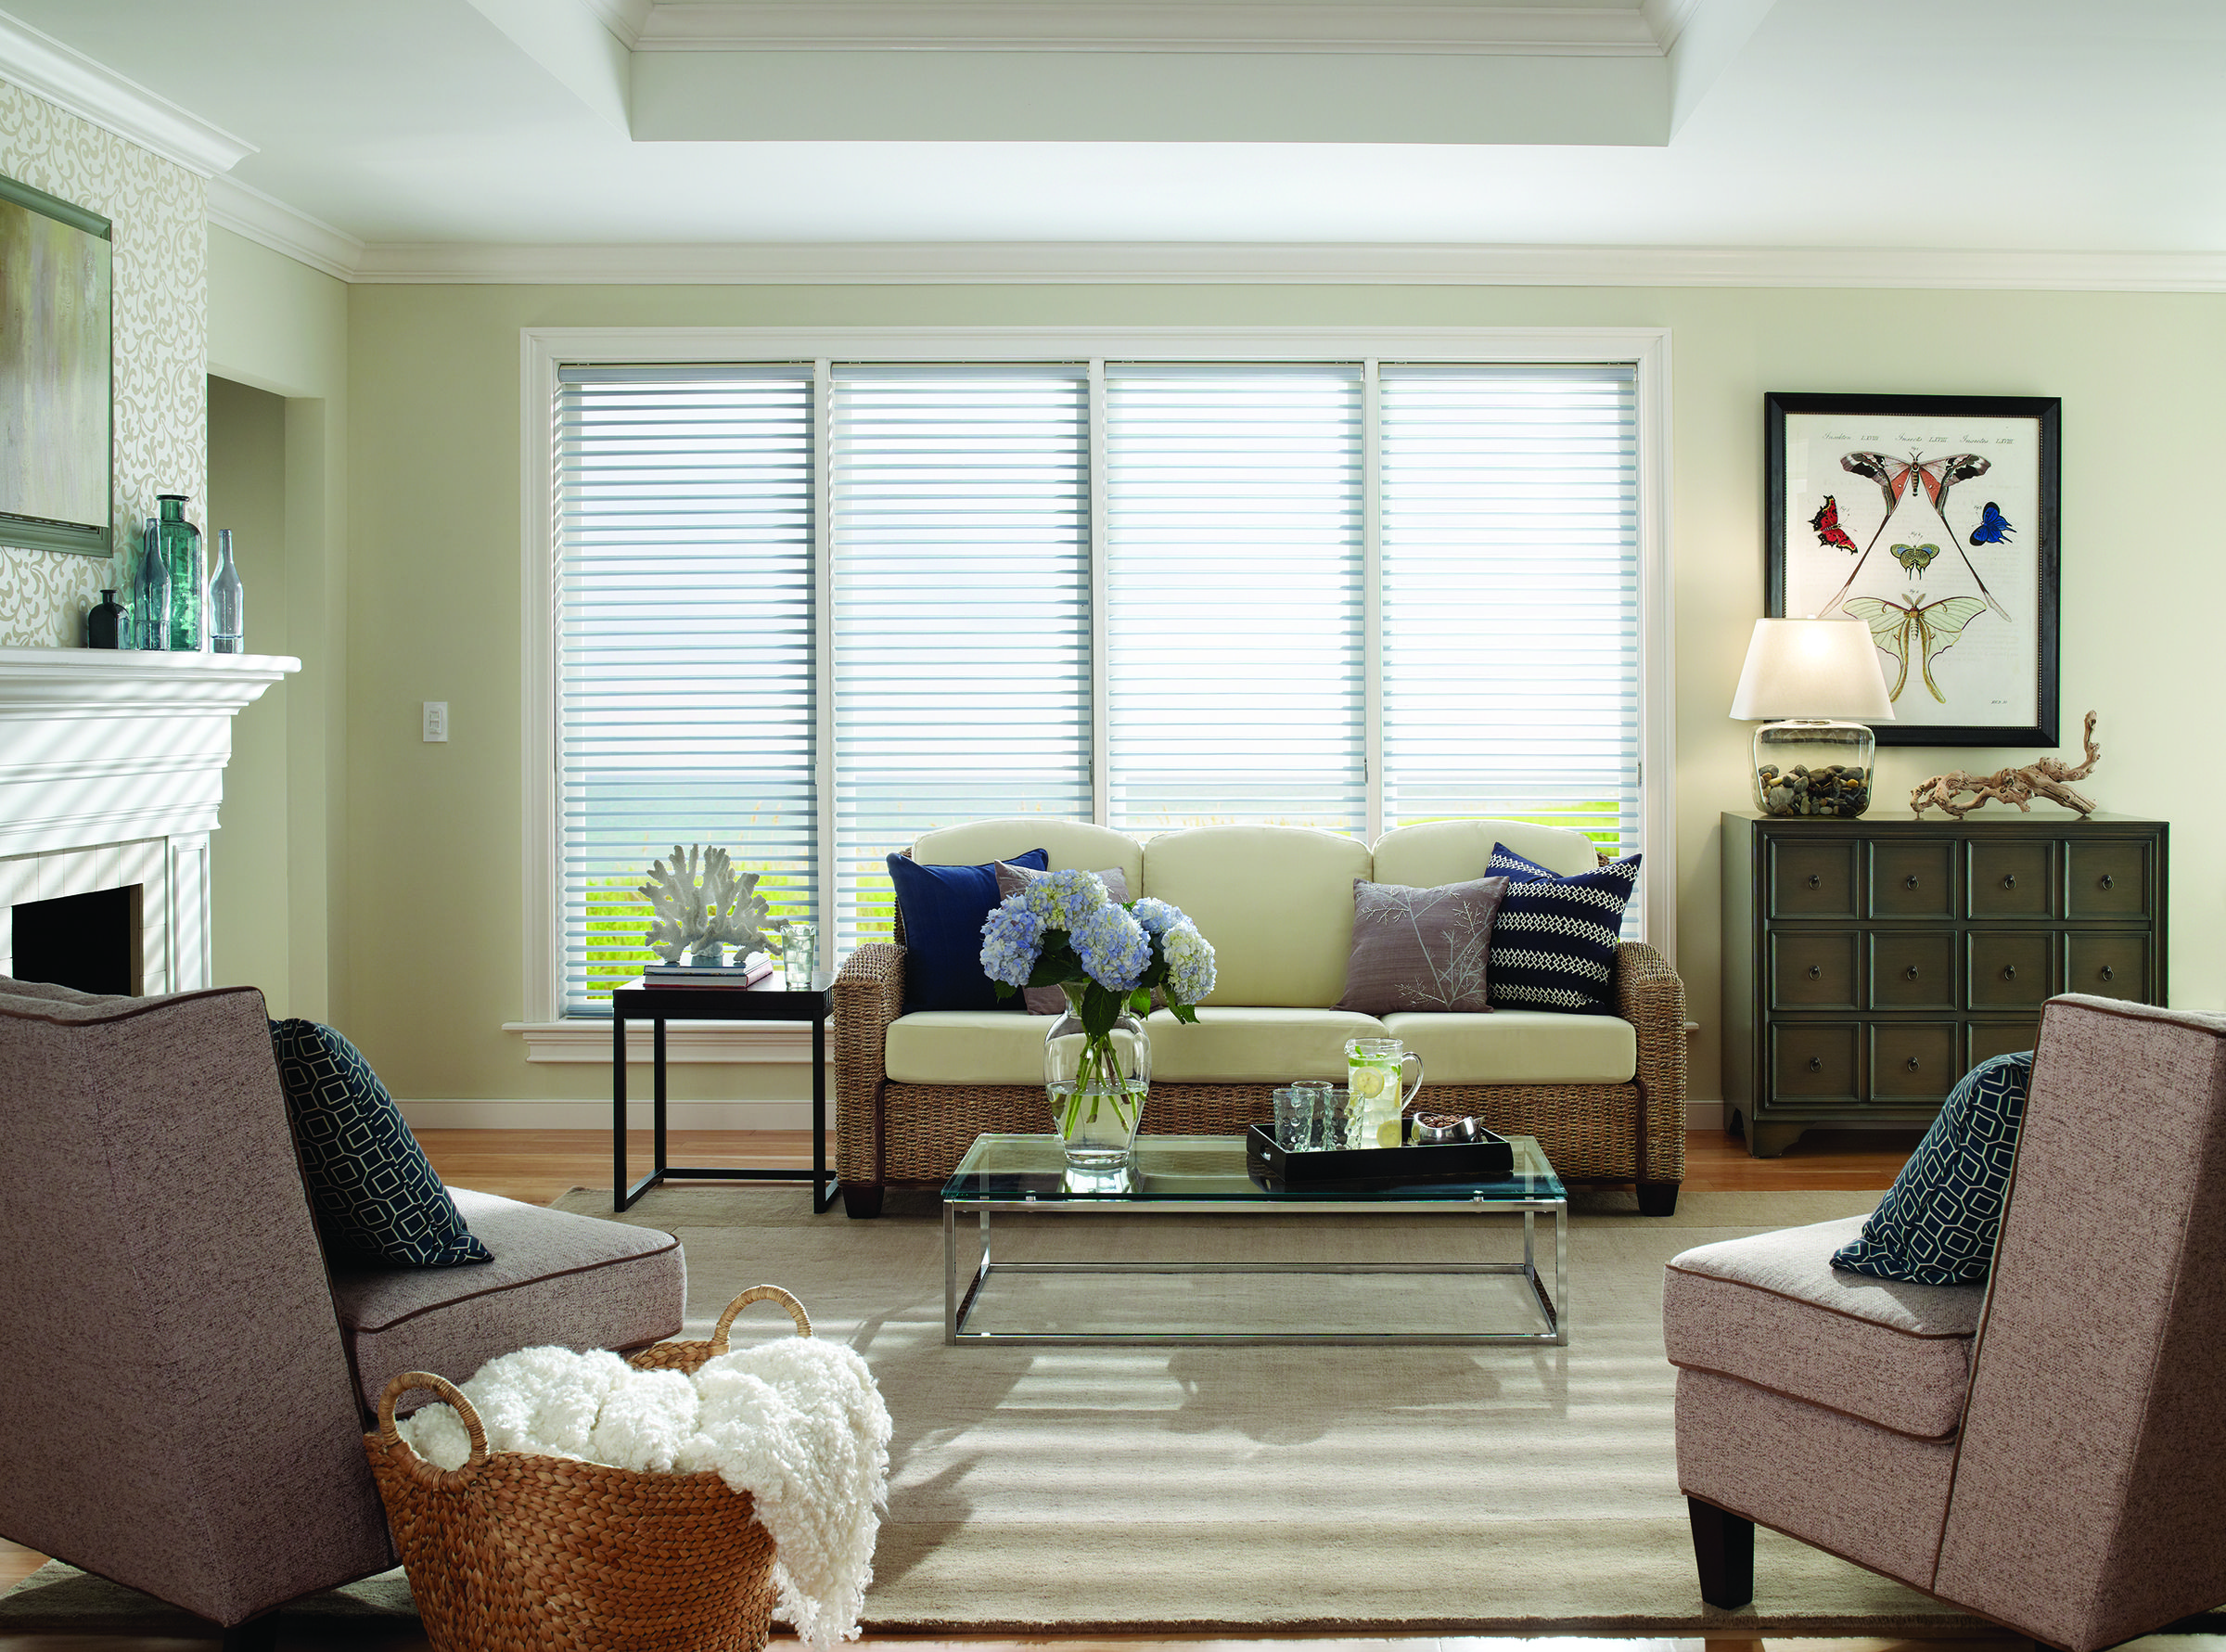 How to choose blinds for your apartment